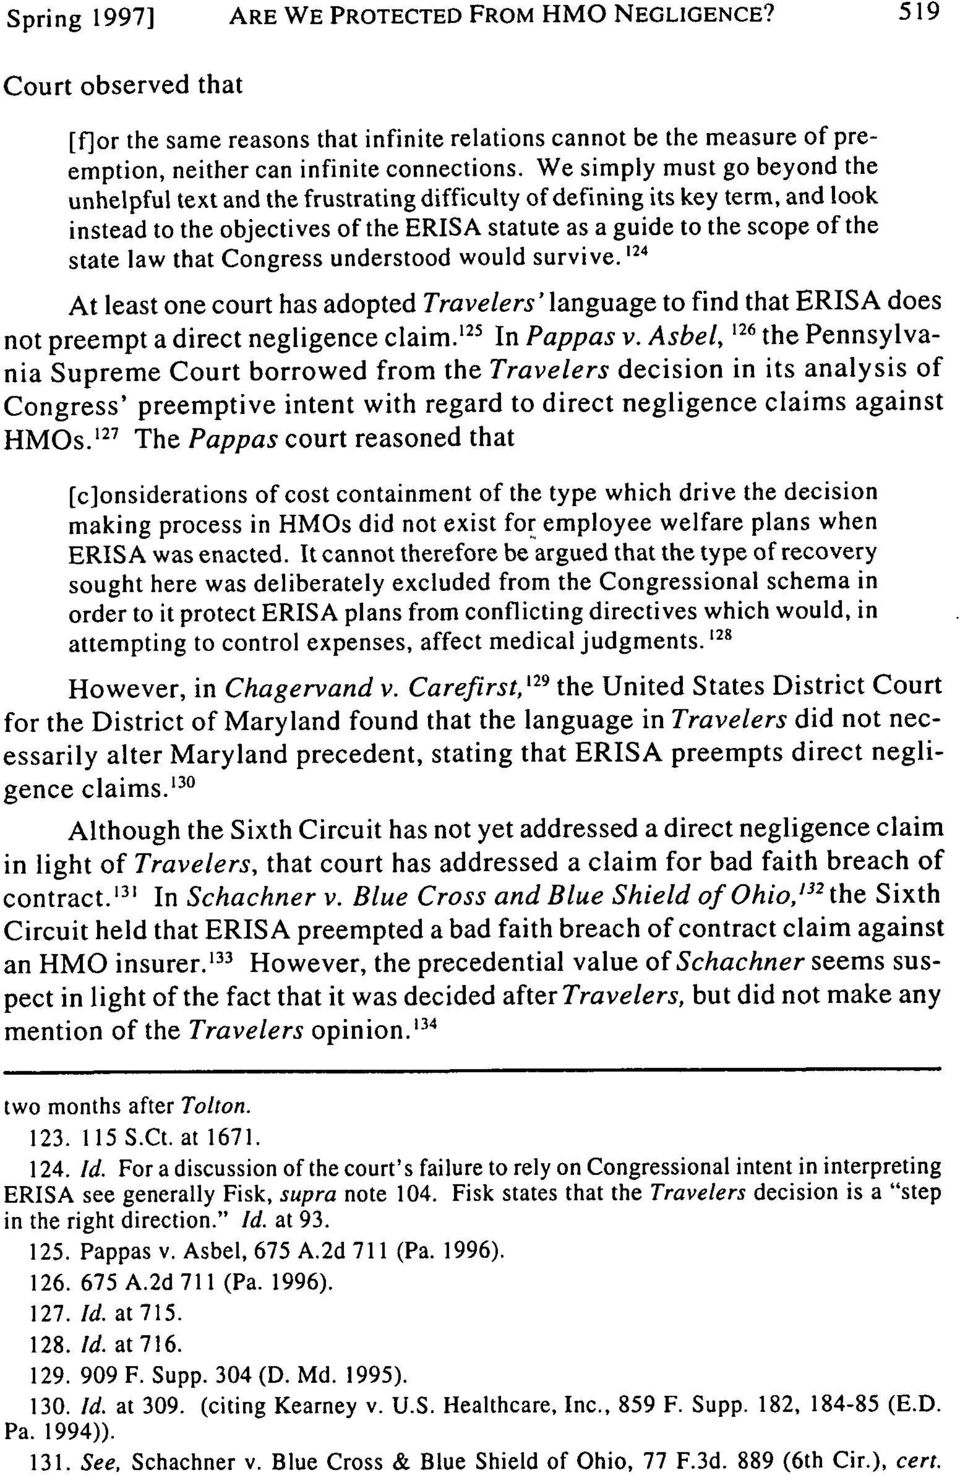 that Congress understood would survive. 24 At least one court has adopted Travelers' language to find that ERISA does not preempt a direct negligence claim.' 25 In Pappas v.